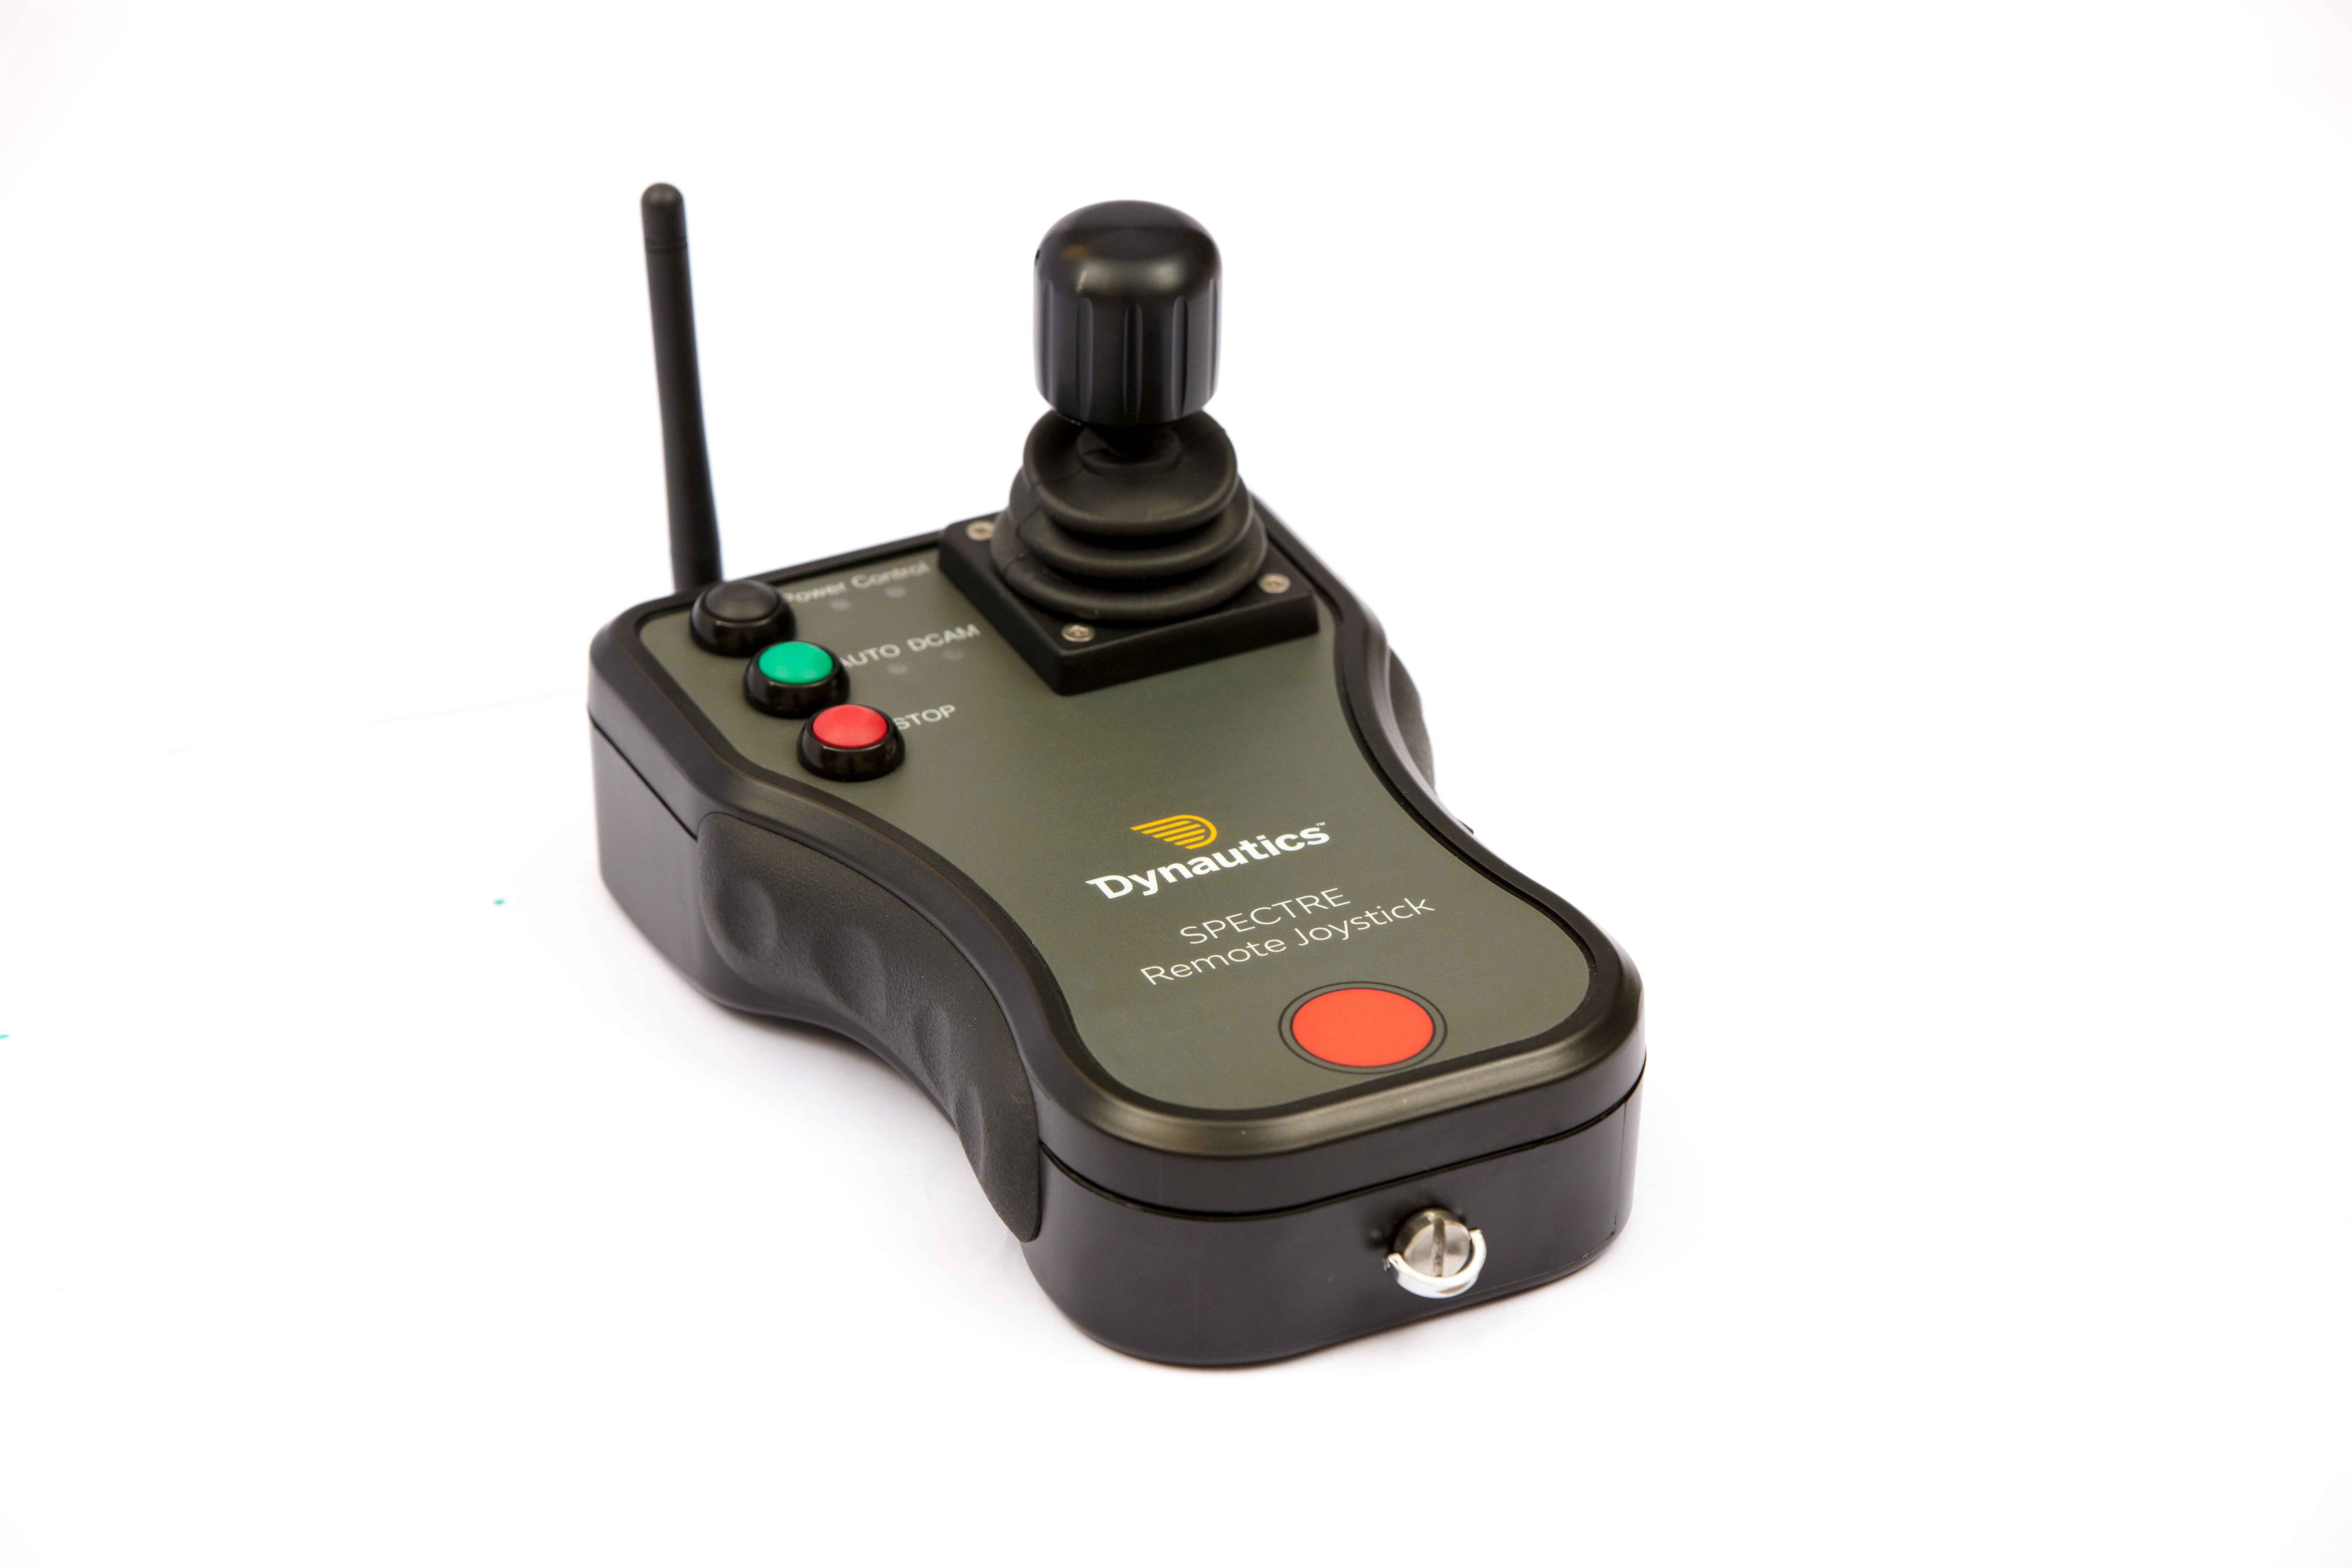 Dynautics Spectre Remote Joystick for unmanned surface vehicles